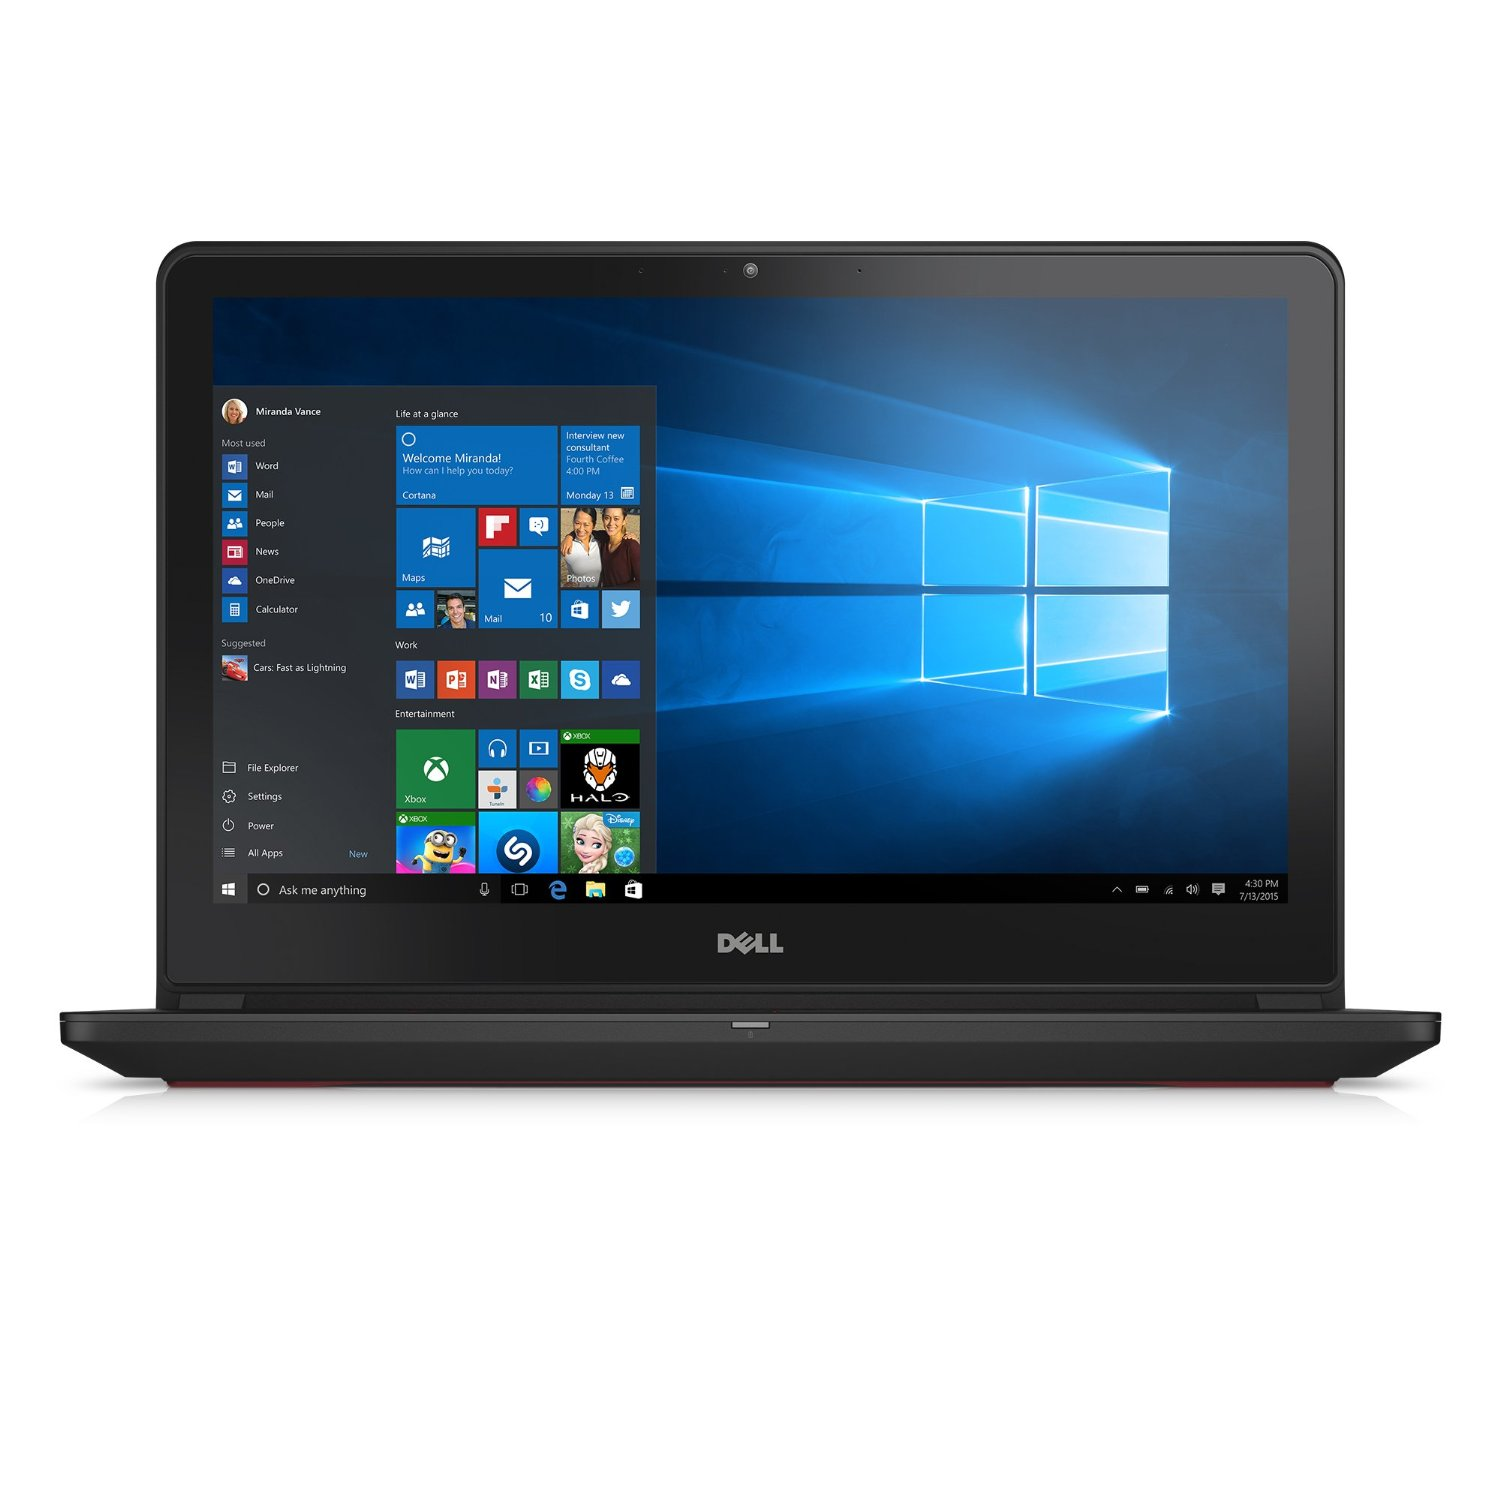 Dell Inspiron i7559-7512GRY 15.6 Inch UHD Touchscreen Laptop (6th Generation Intel Core i7, 16 GB RAM, 1 TB HDD + 128 GB SSD) NVIDIA GeForce GTX 960M